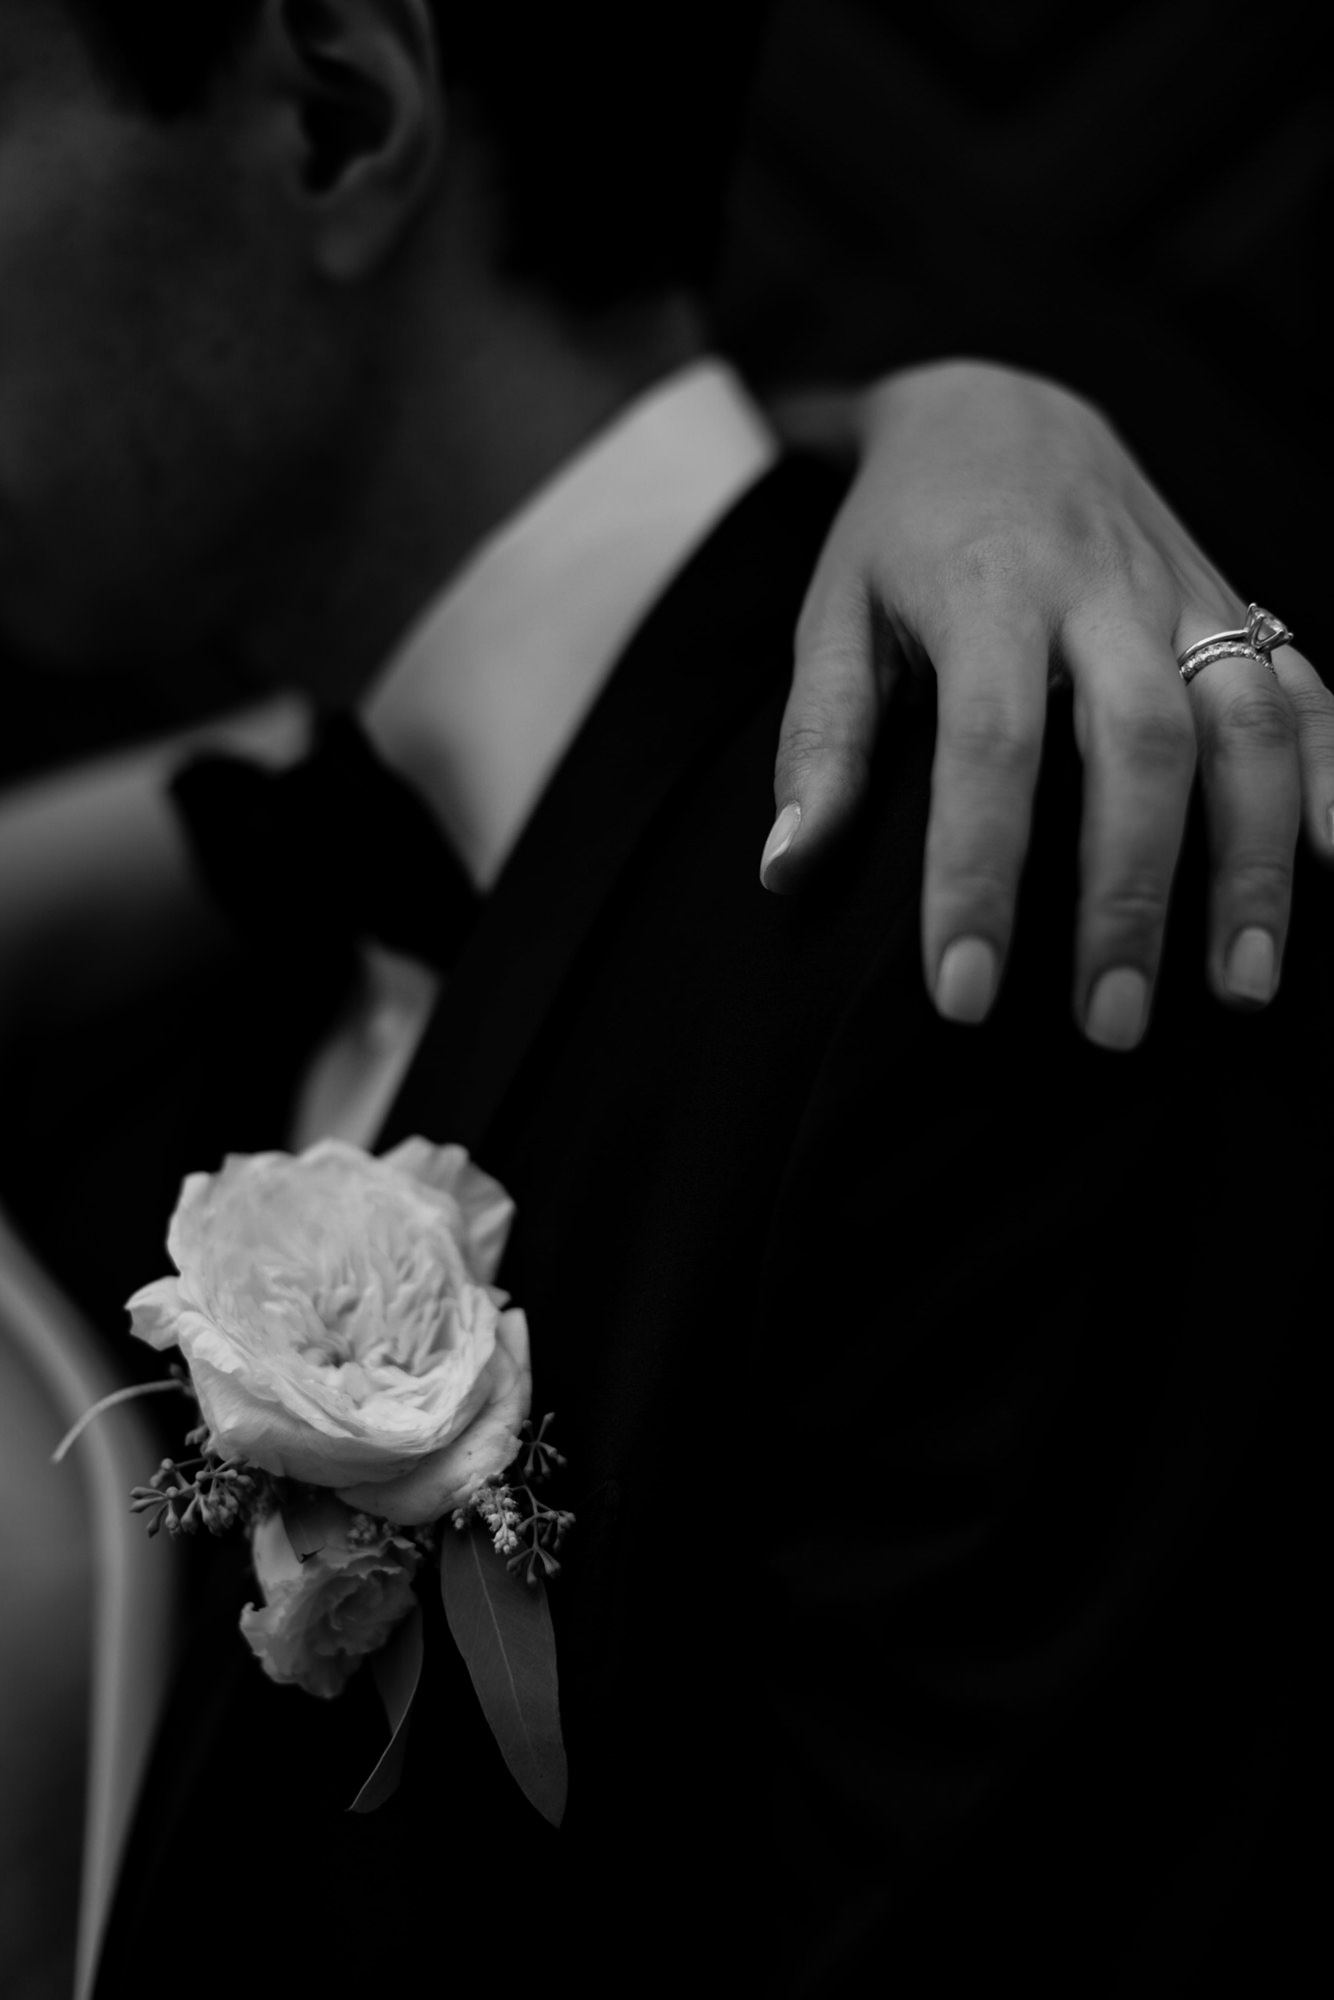 Black and white moody shot of bride's hand on groom's shoulder by Thierry Joubert